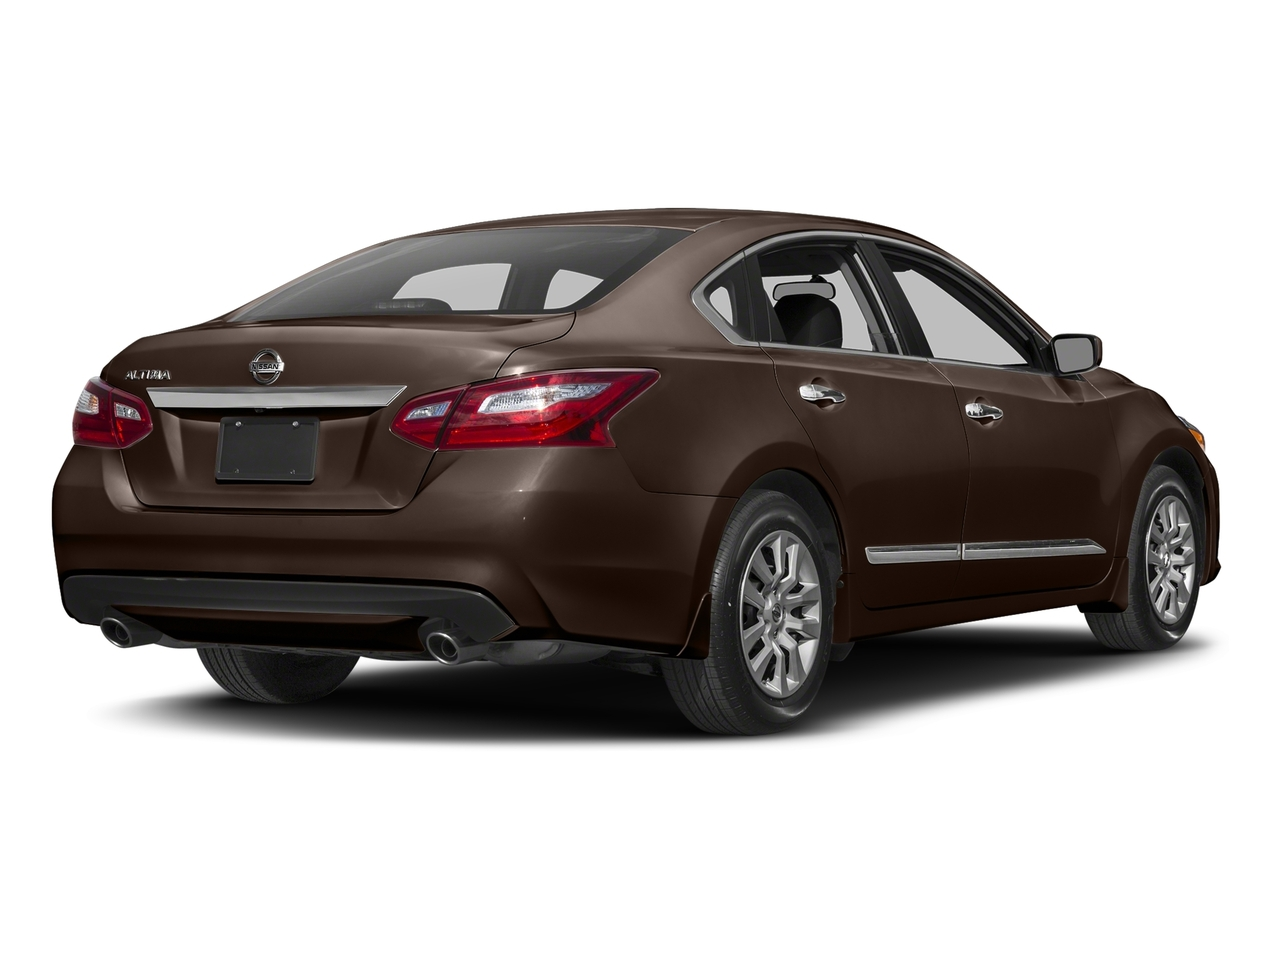 2017 Nissan Altima 2.5 SV 4dr Car Slide